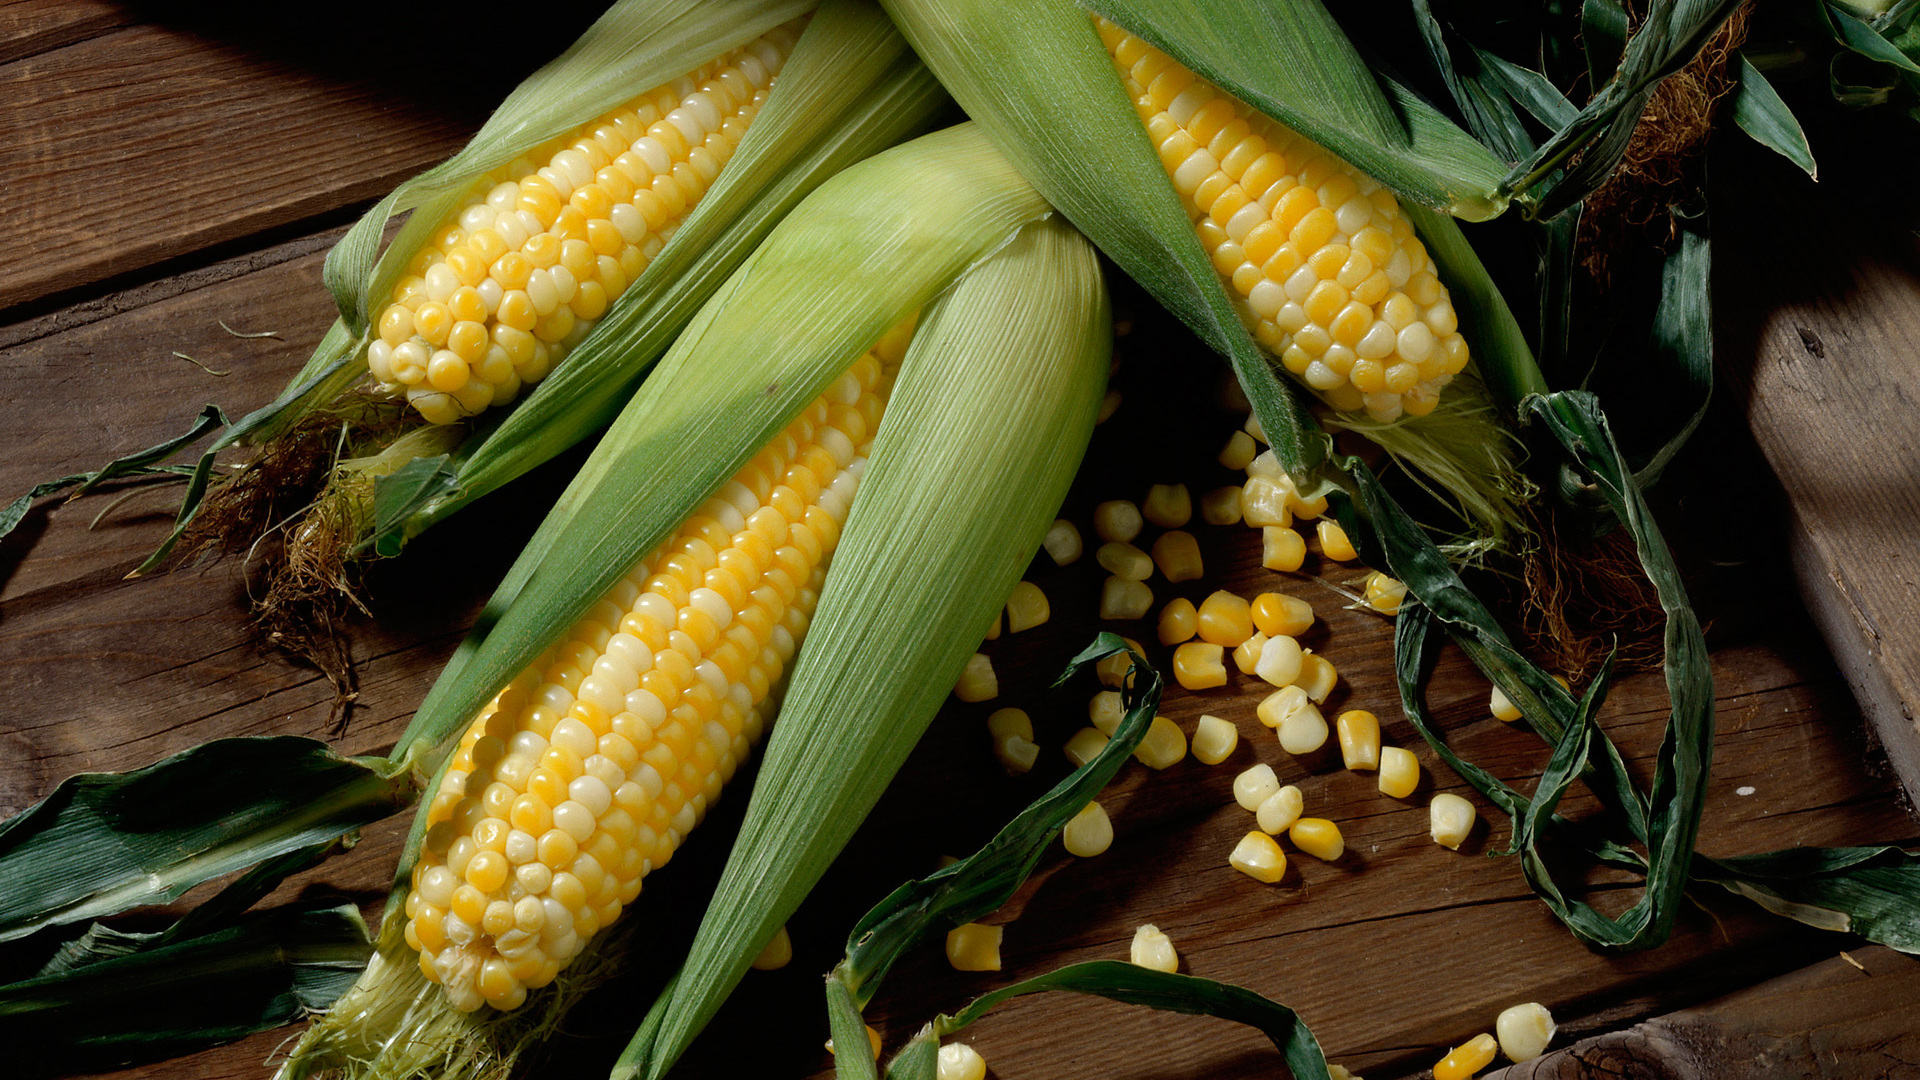 Corn Wallpapers 37688 1920x1080 px